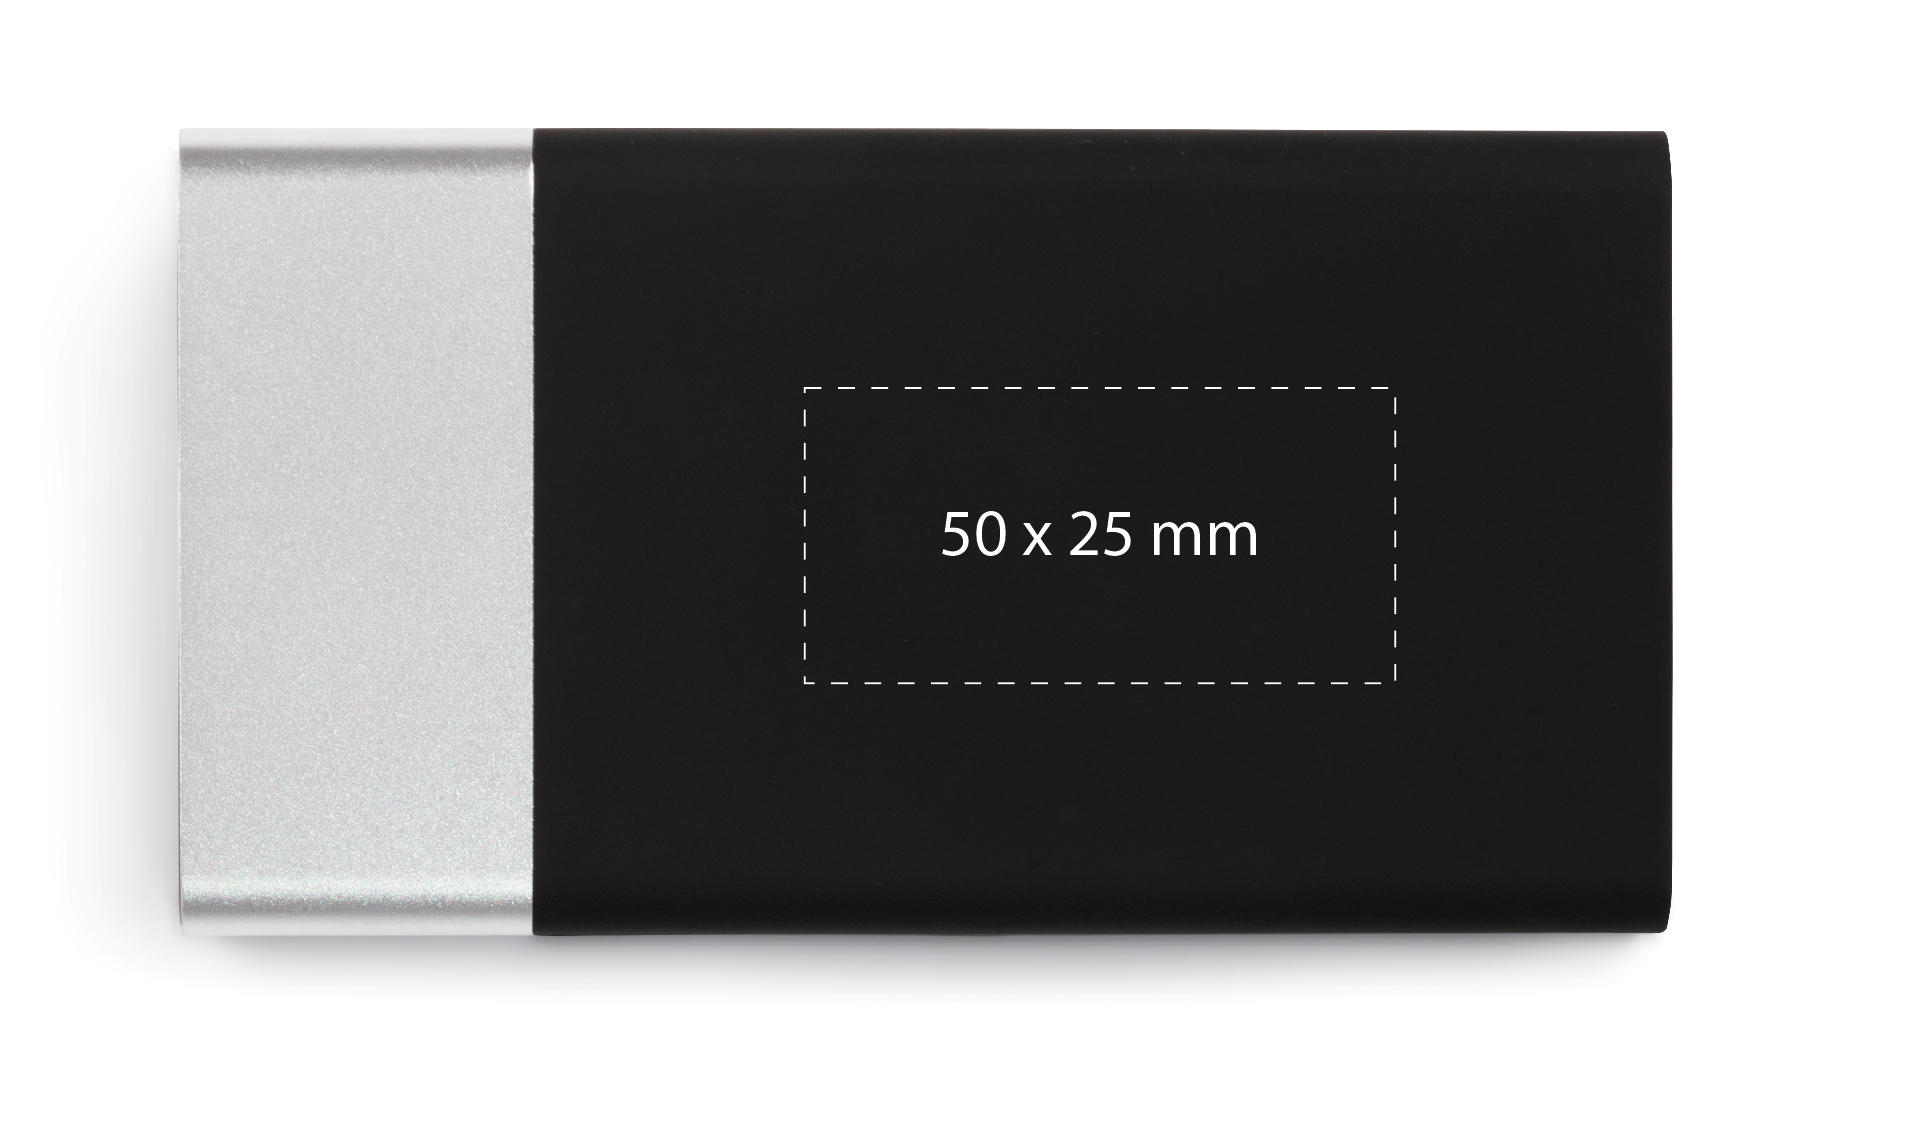 powerbank-clever-5000-p20-silver-print-area